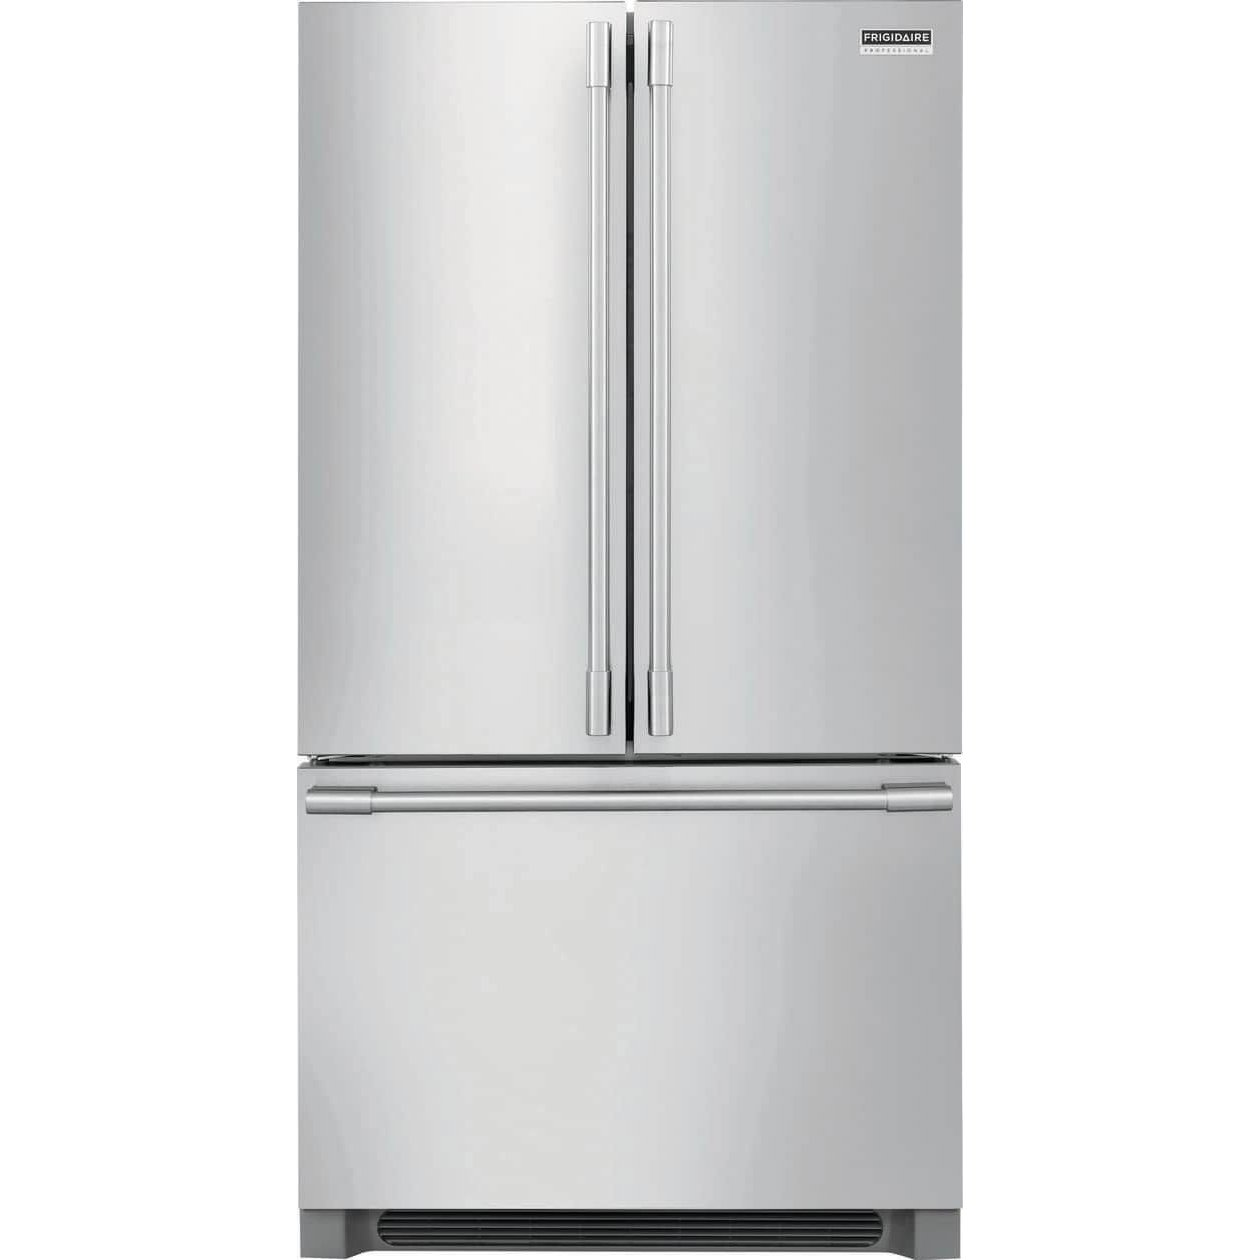 Frigidaire Professional 22.3 Cu. Ft. French Door Counter-Depth Refrigerator  - Stainless Steel  acd855c77b40